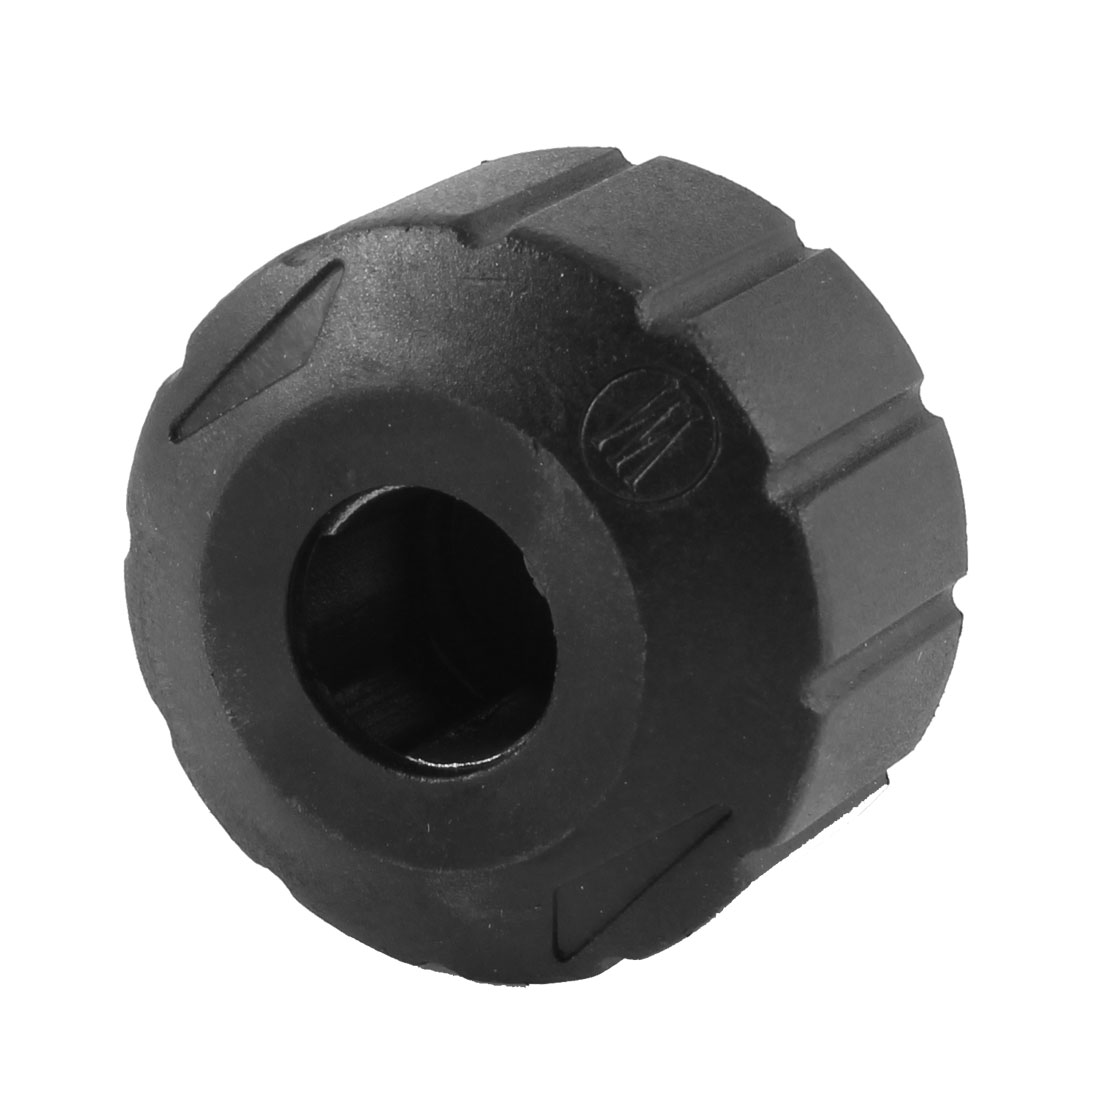 34mm x 50mm Black Plastic Replacement Electric Drill Chuck